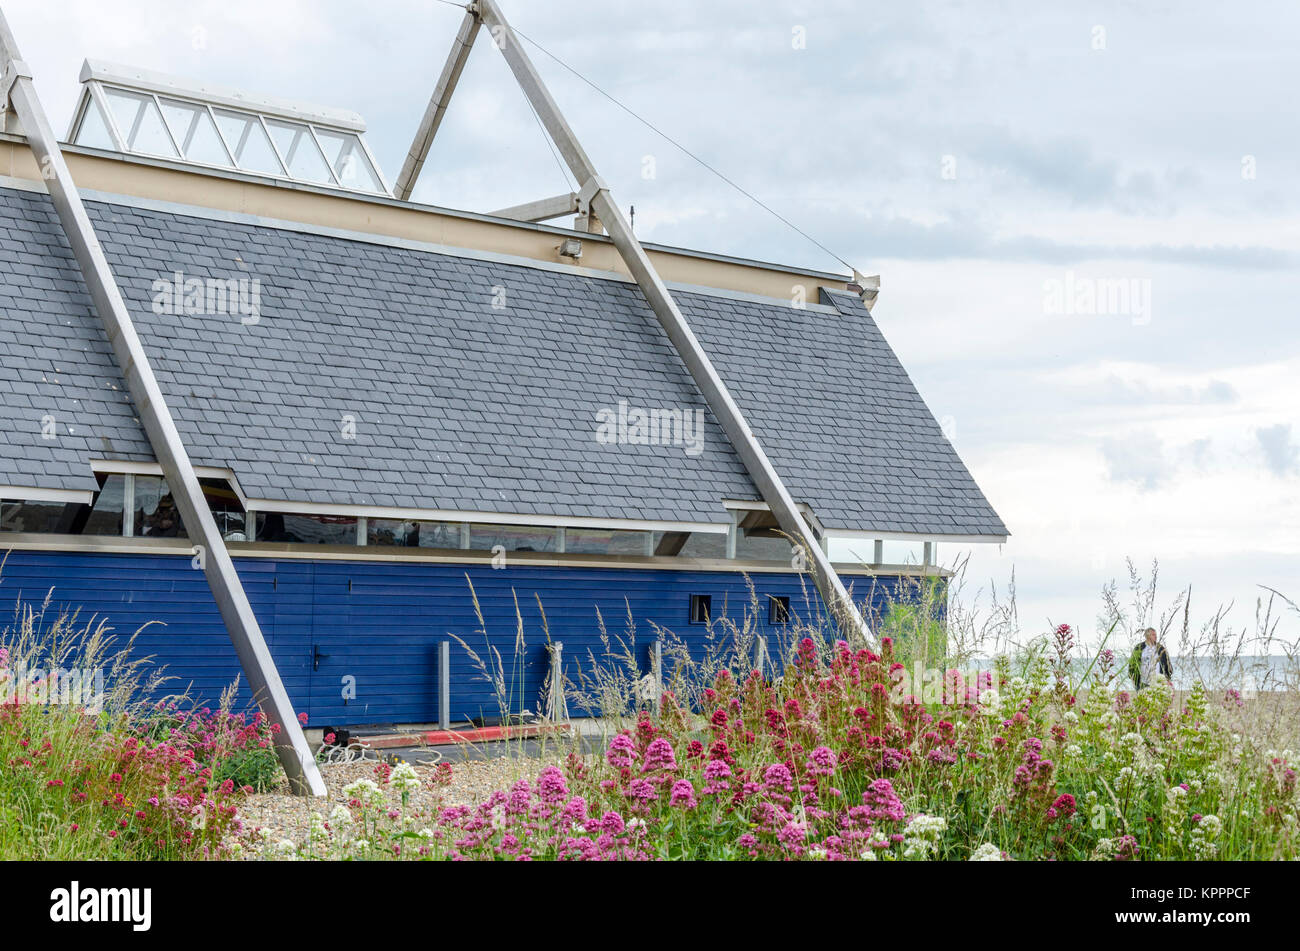 RNLI Aldeburgh Lifeboat Station. Aldeburgh English coastal town in Suffolk, UK - Stock Image